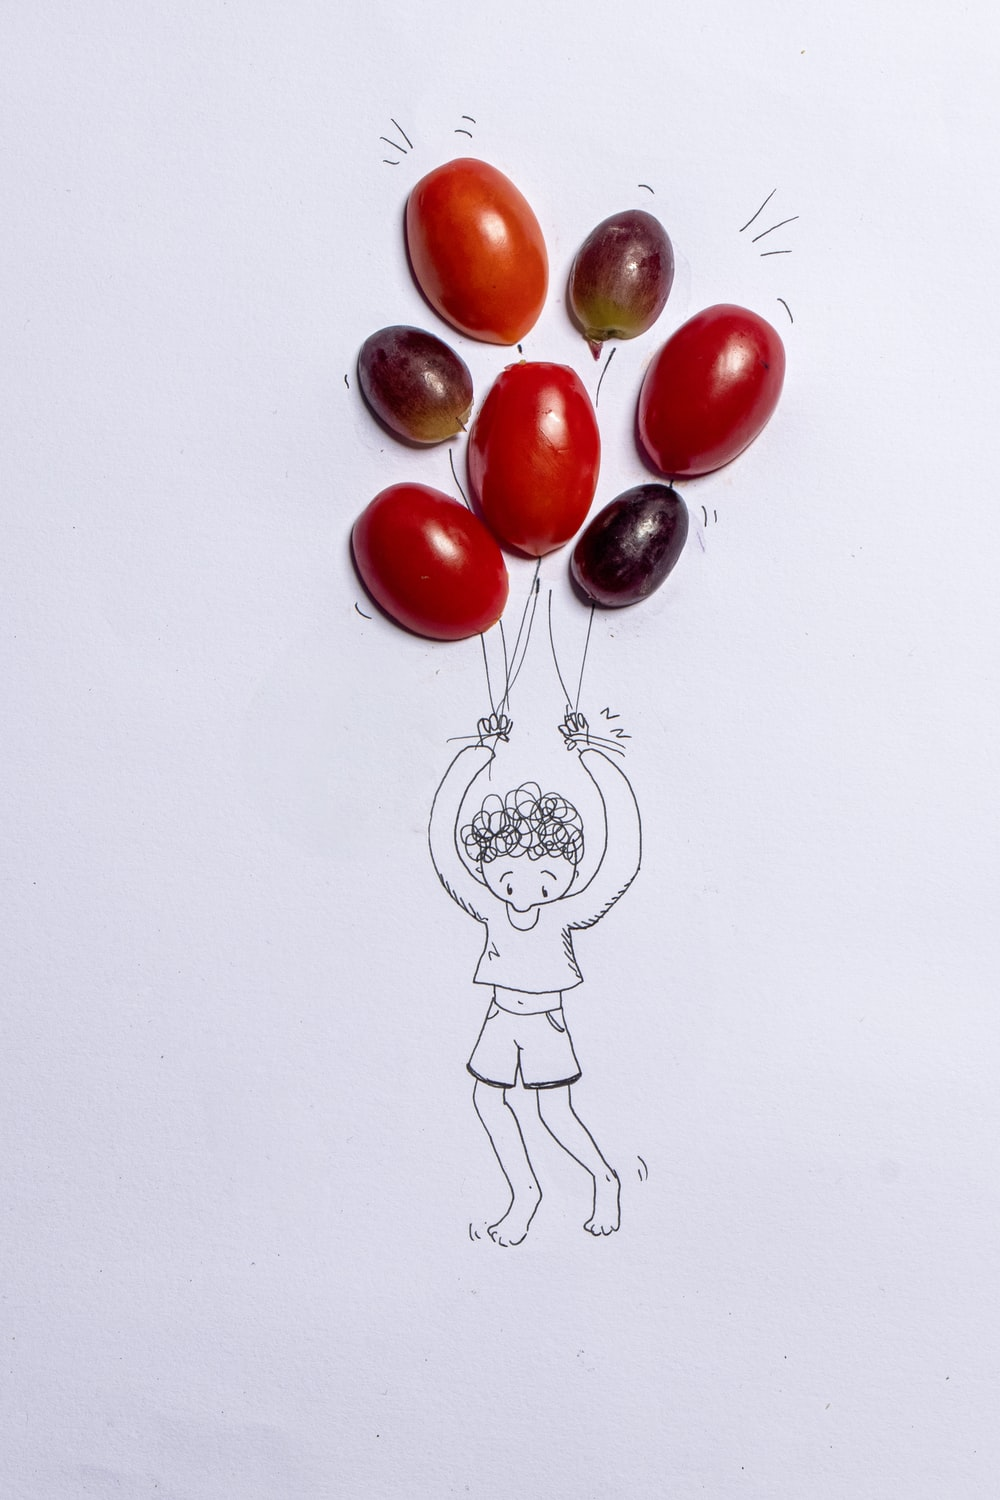 red cherry fruit on white surface